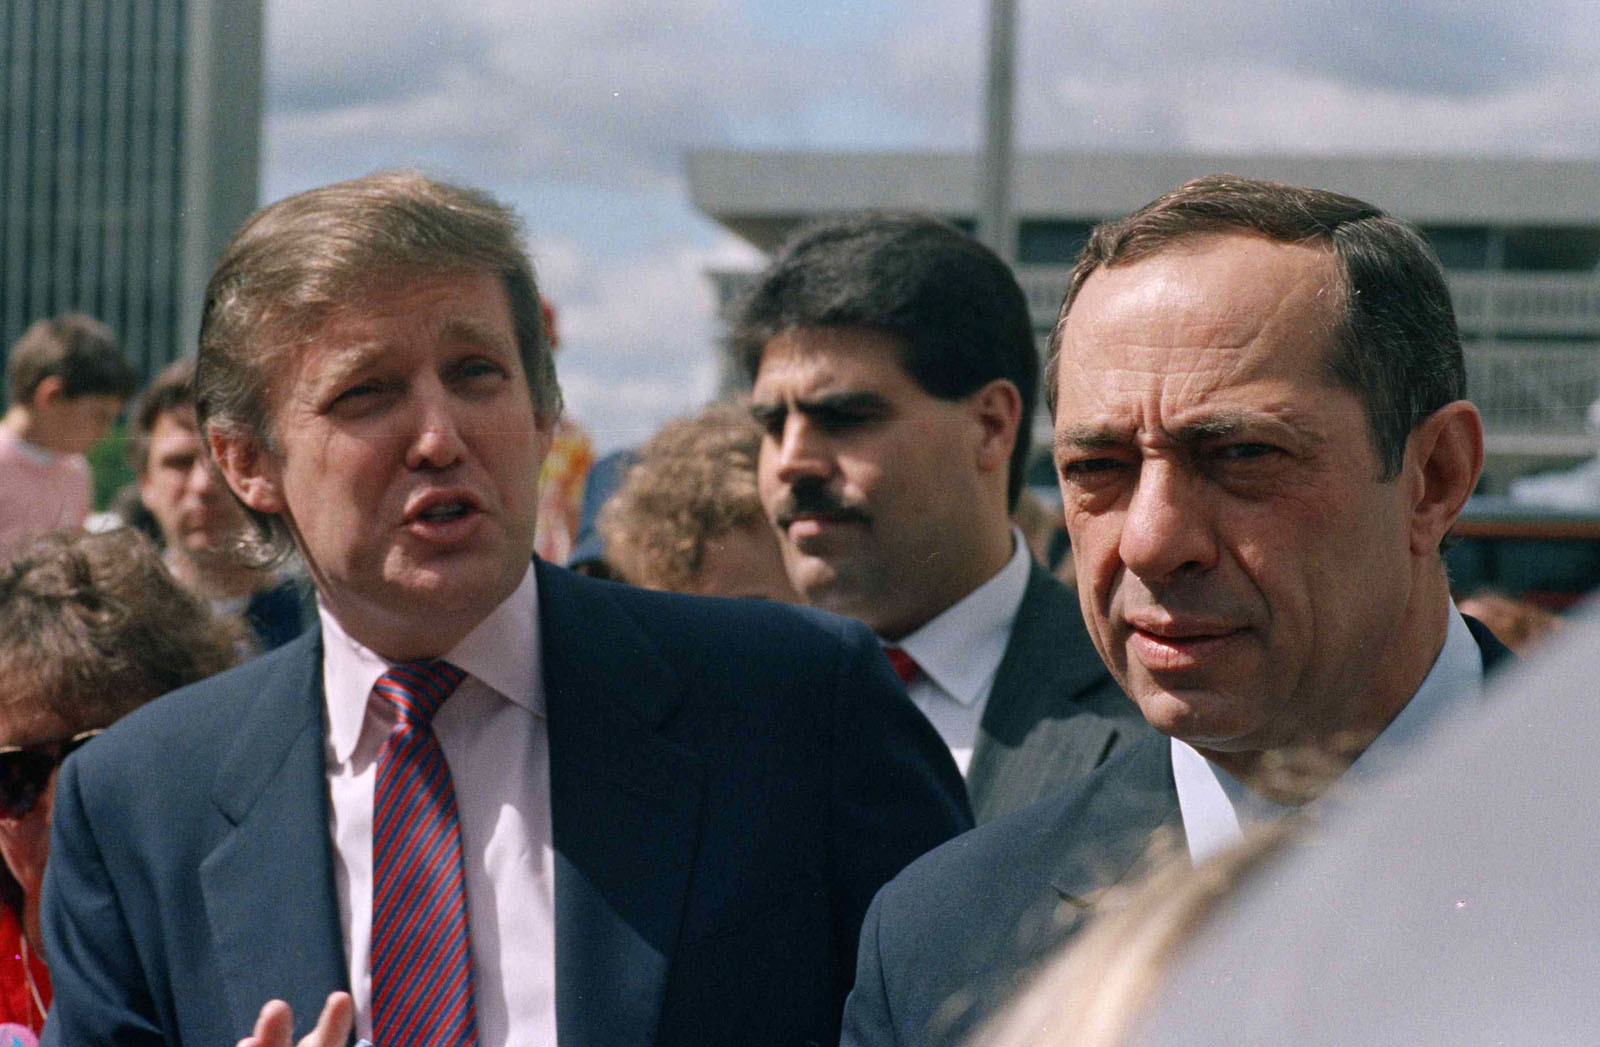 Developer Donald Trump and New York State Gov. Mario Cuomo get together before the start of the Tour De Trump bicycle race in Albany, New York on May 6, 1989. (AP Photo/Alan Soloman)